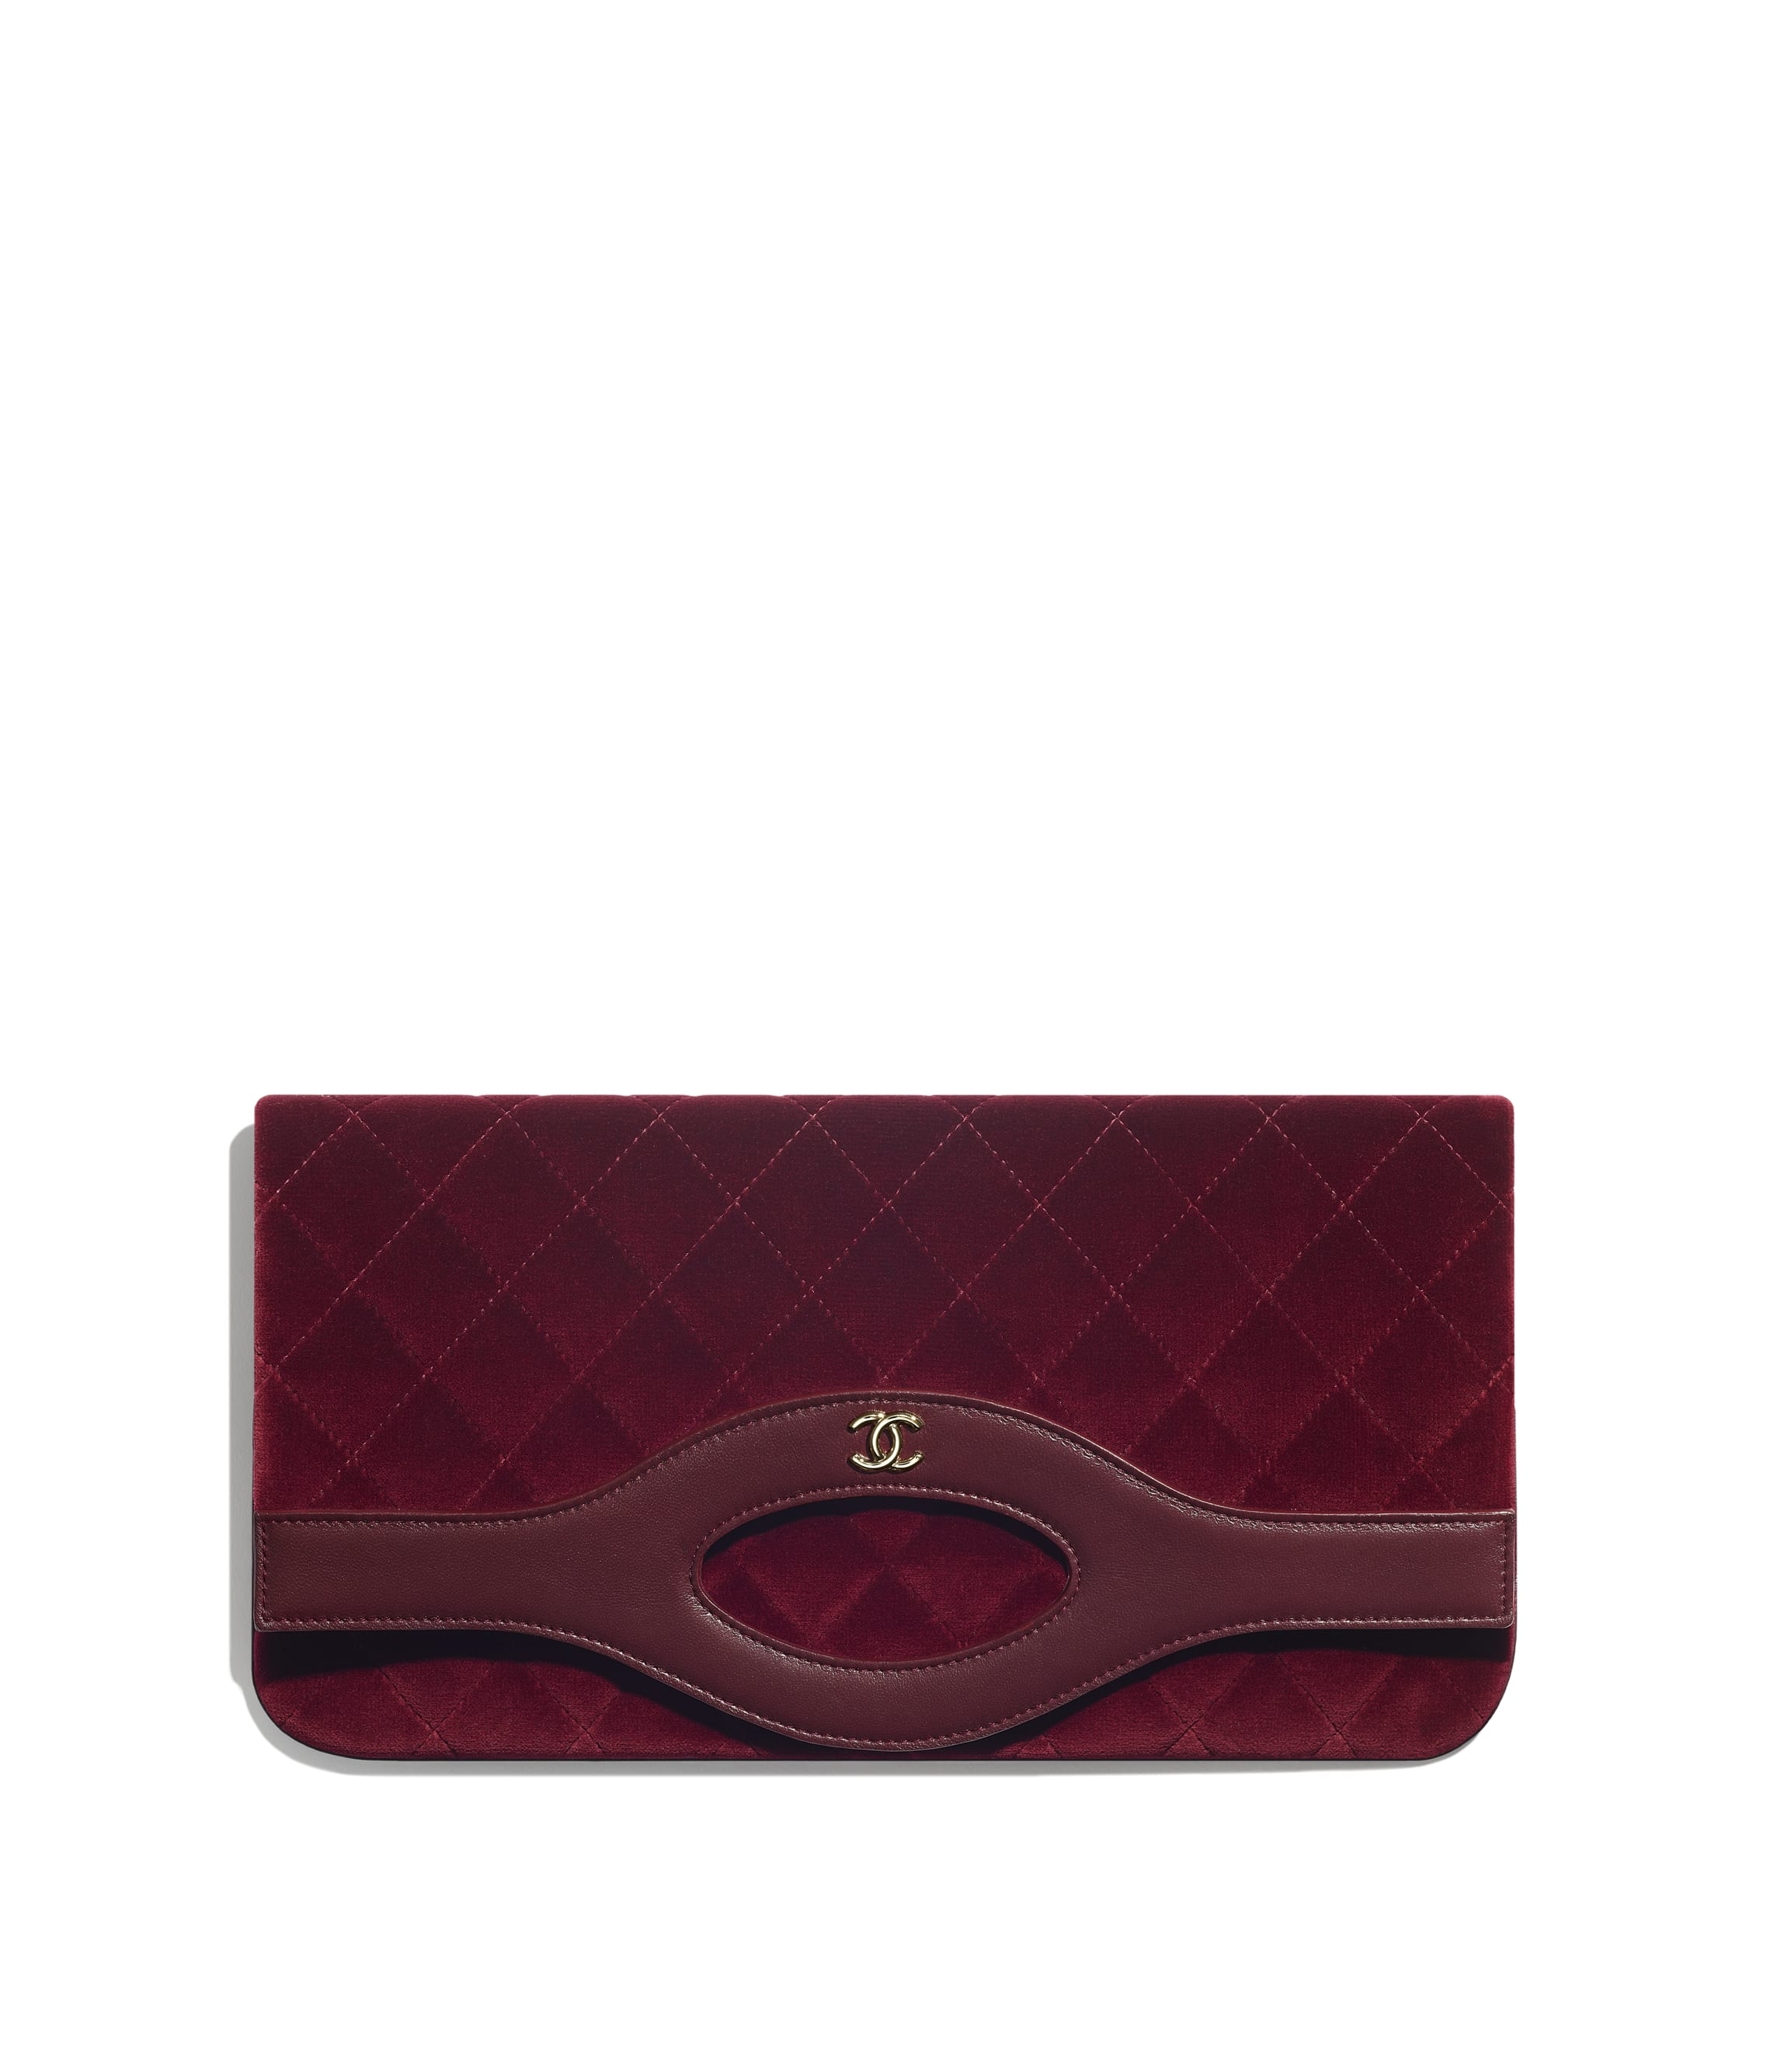 the best attitude f32e7 6940e Small leather goods - CHANEL